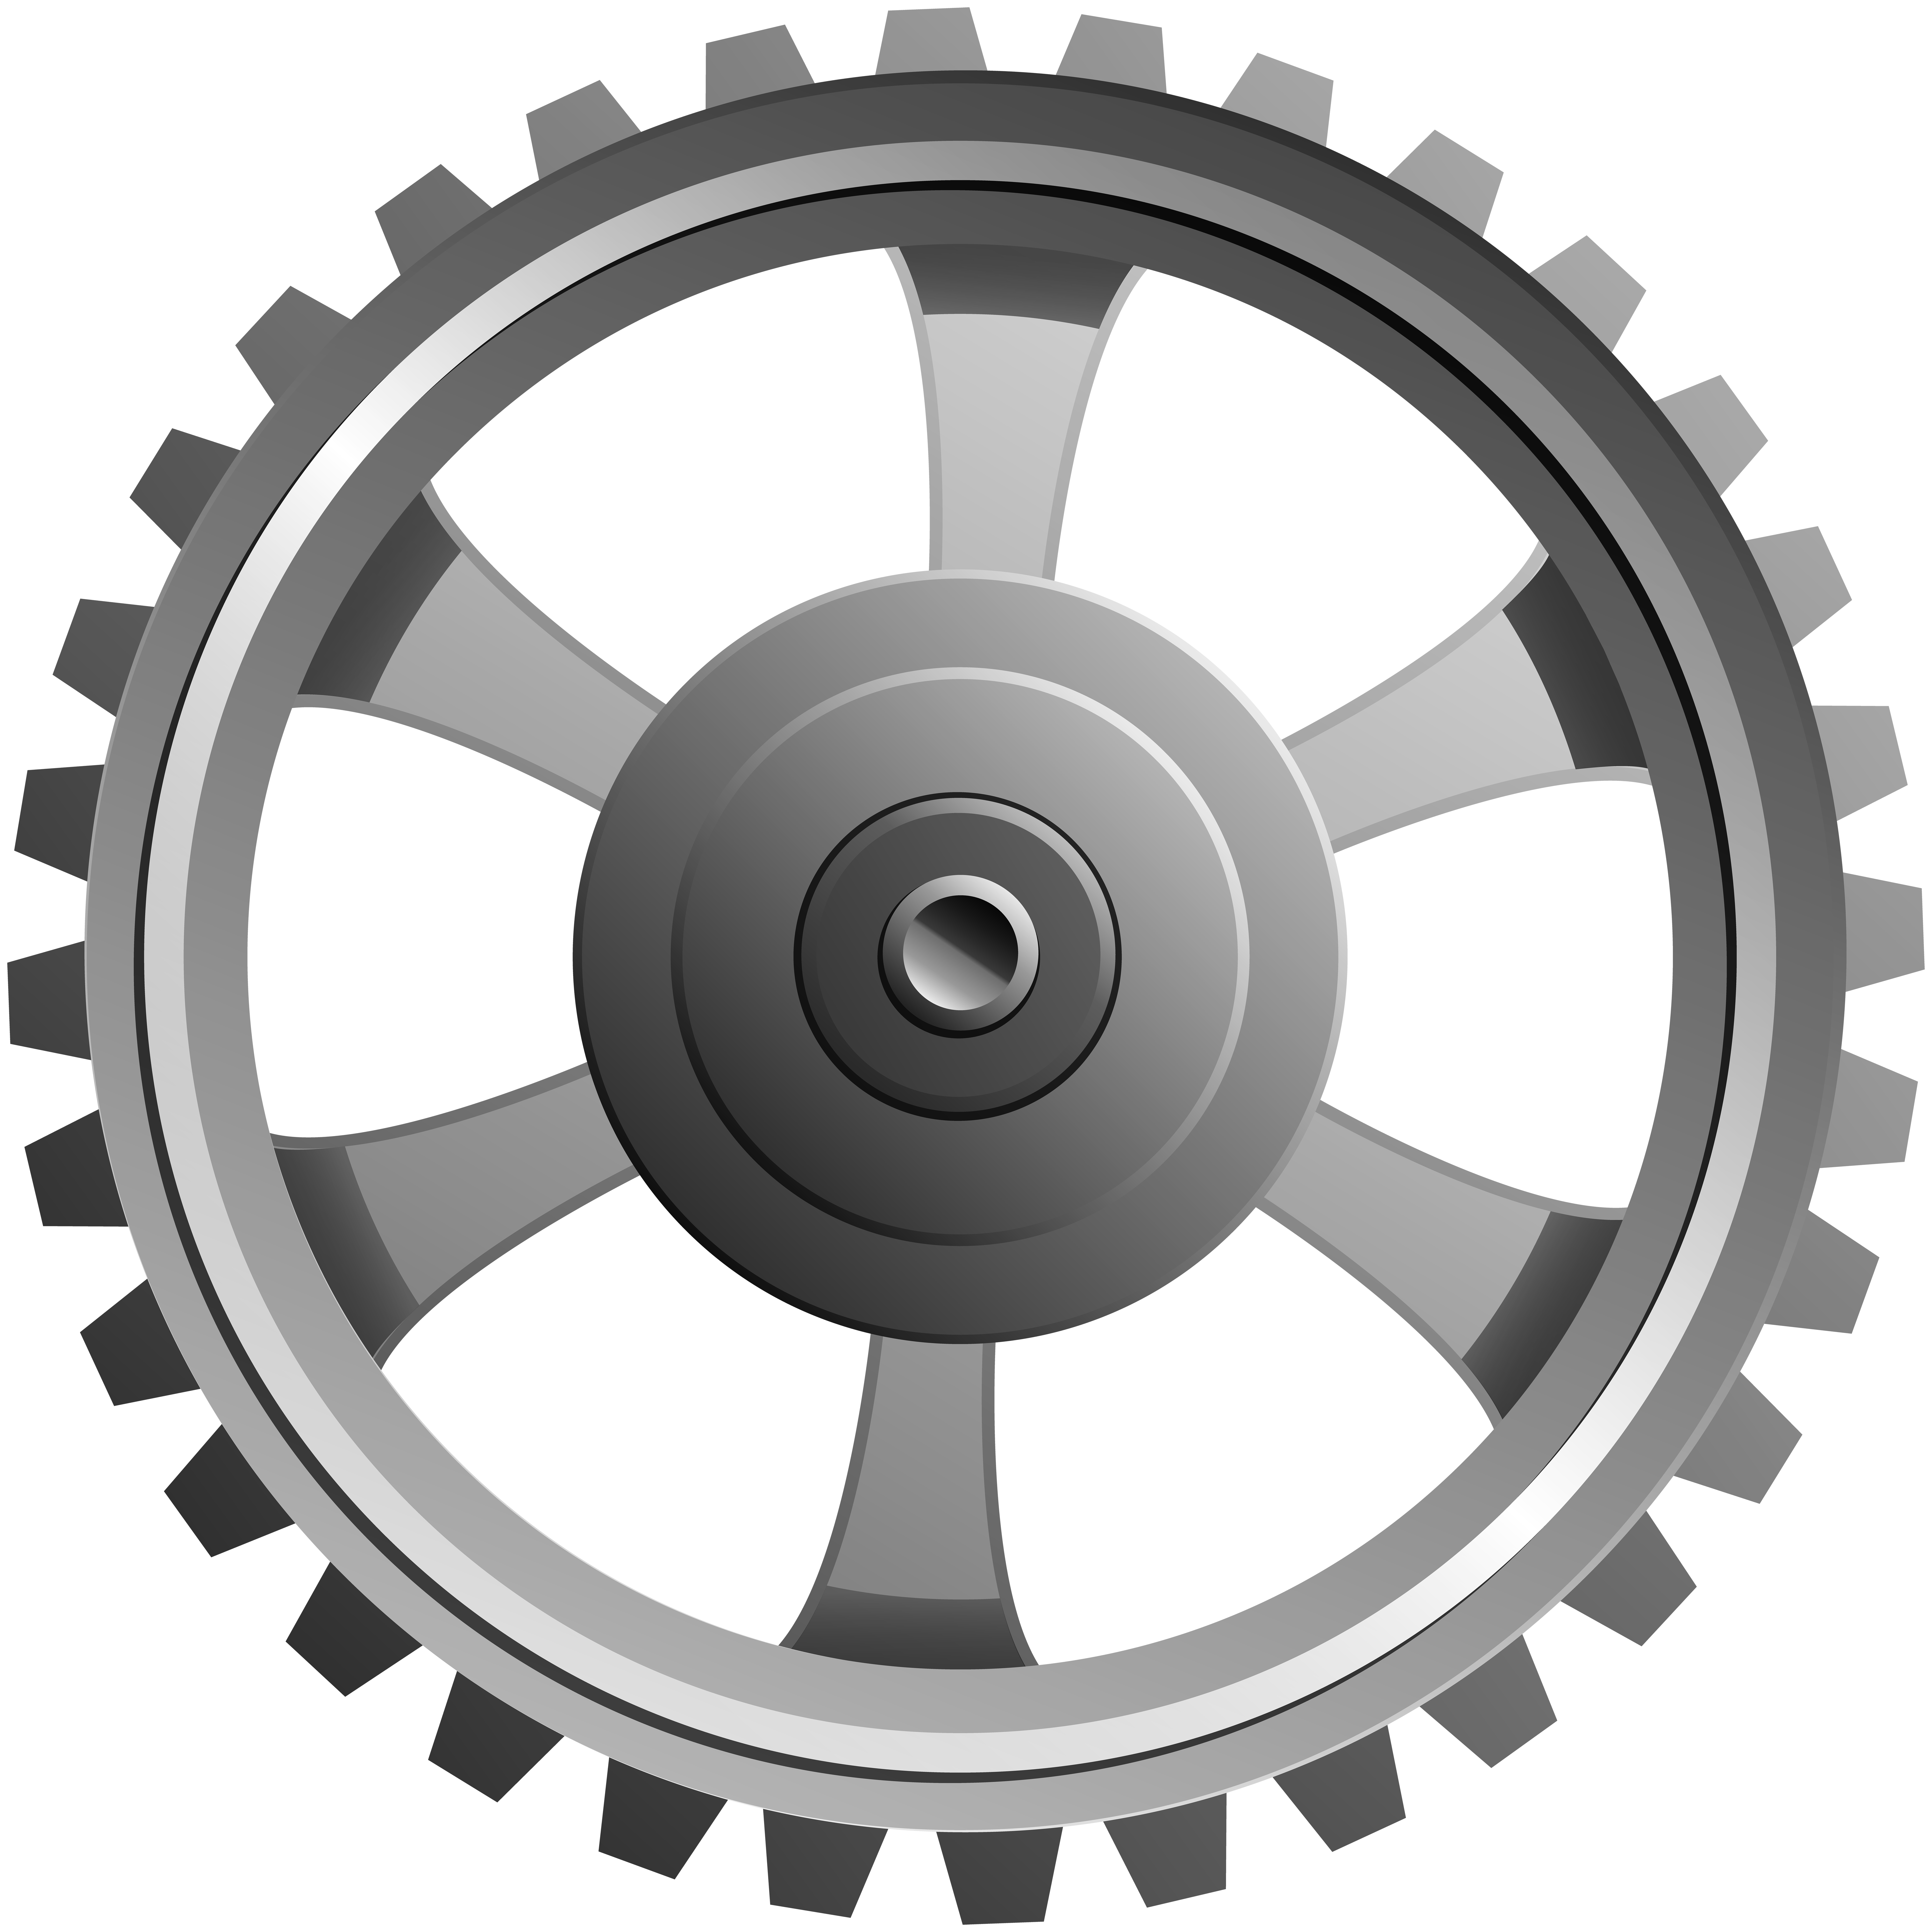 Movies clipart wheel. Gear transparent png clip